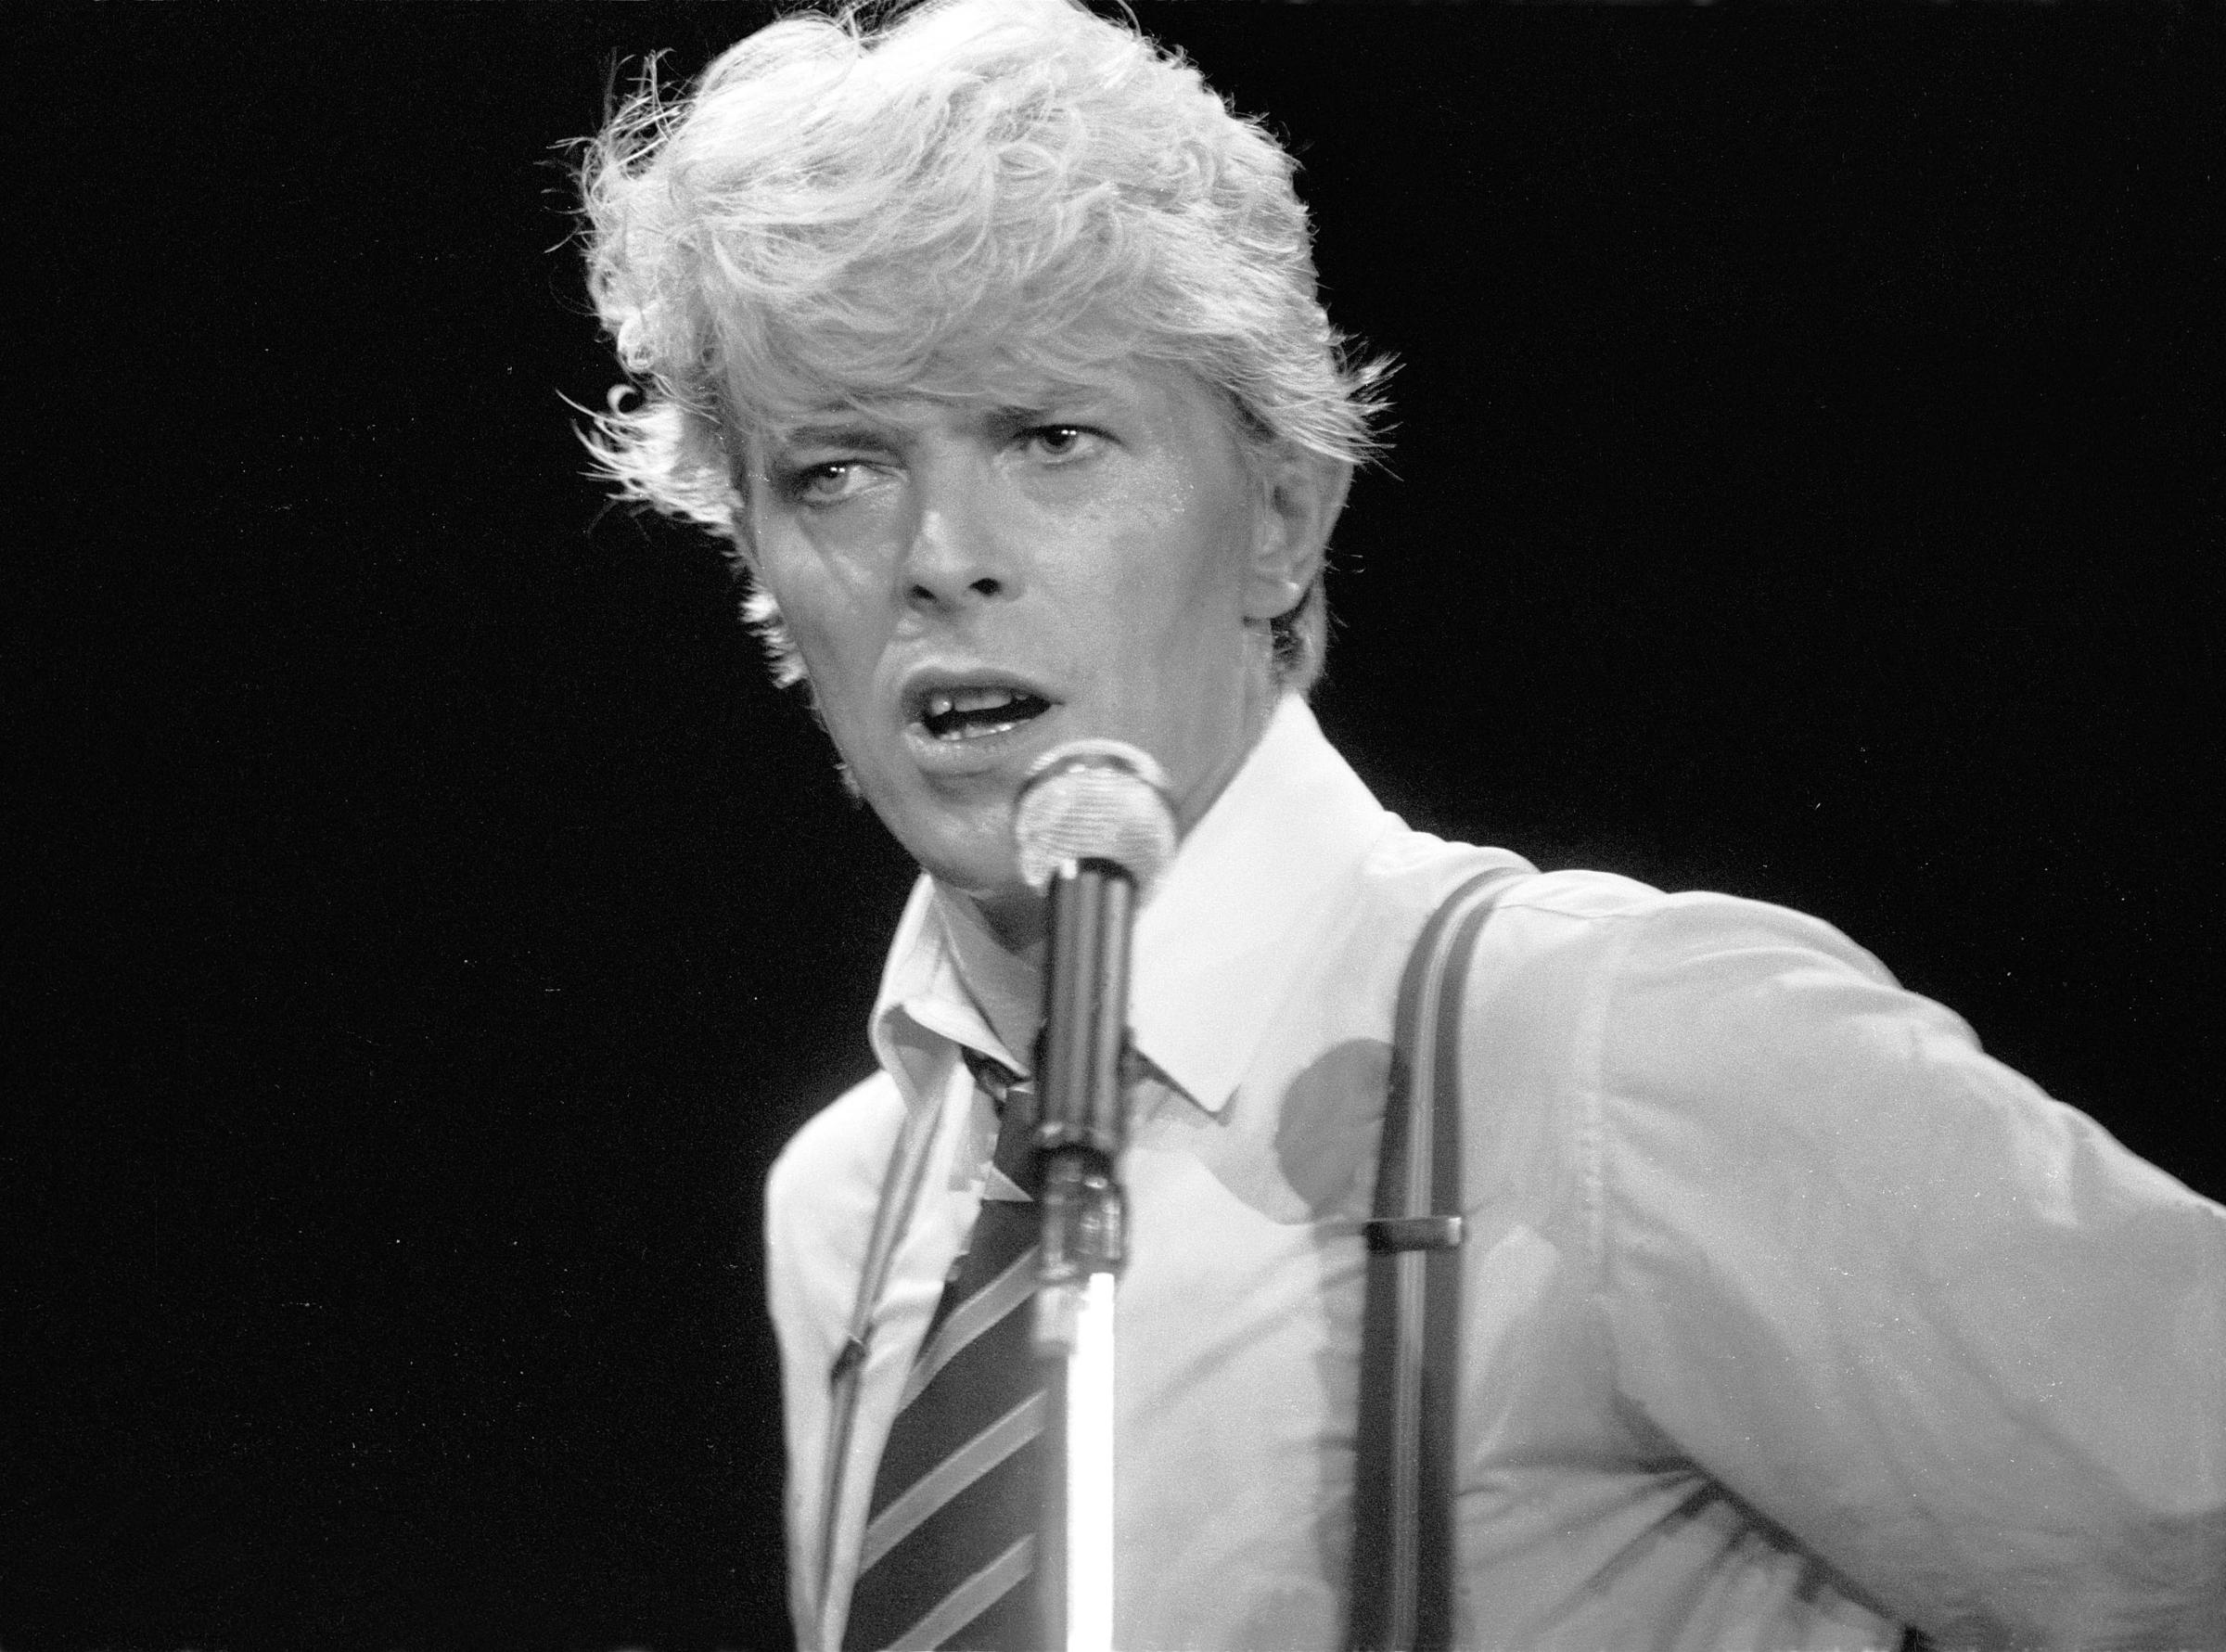 Genesis Car Wallpaper Rock Icon David Bowie Dies At 69 Kuow News And Information